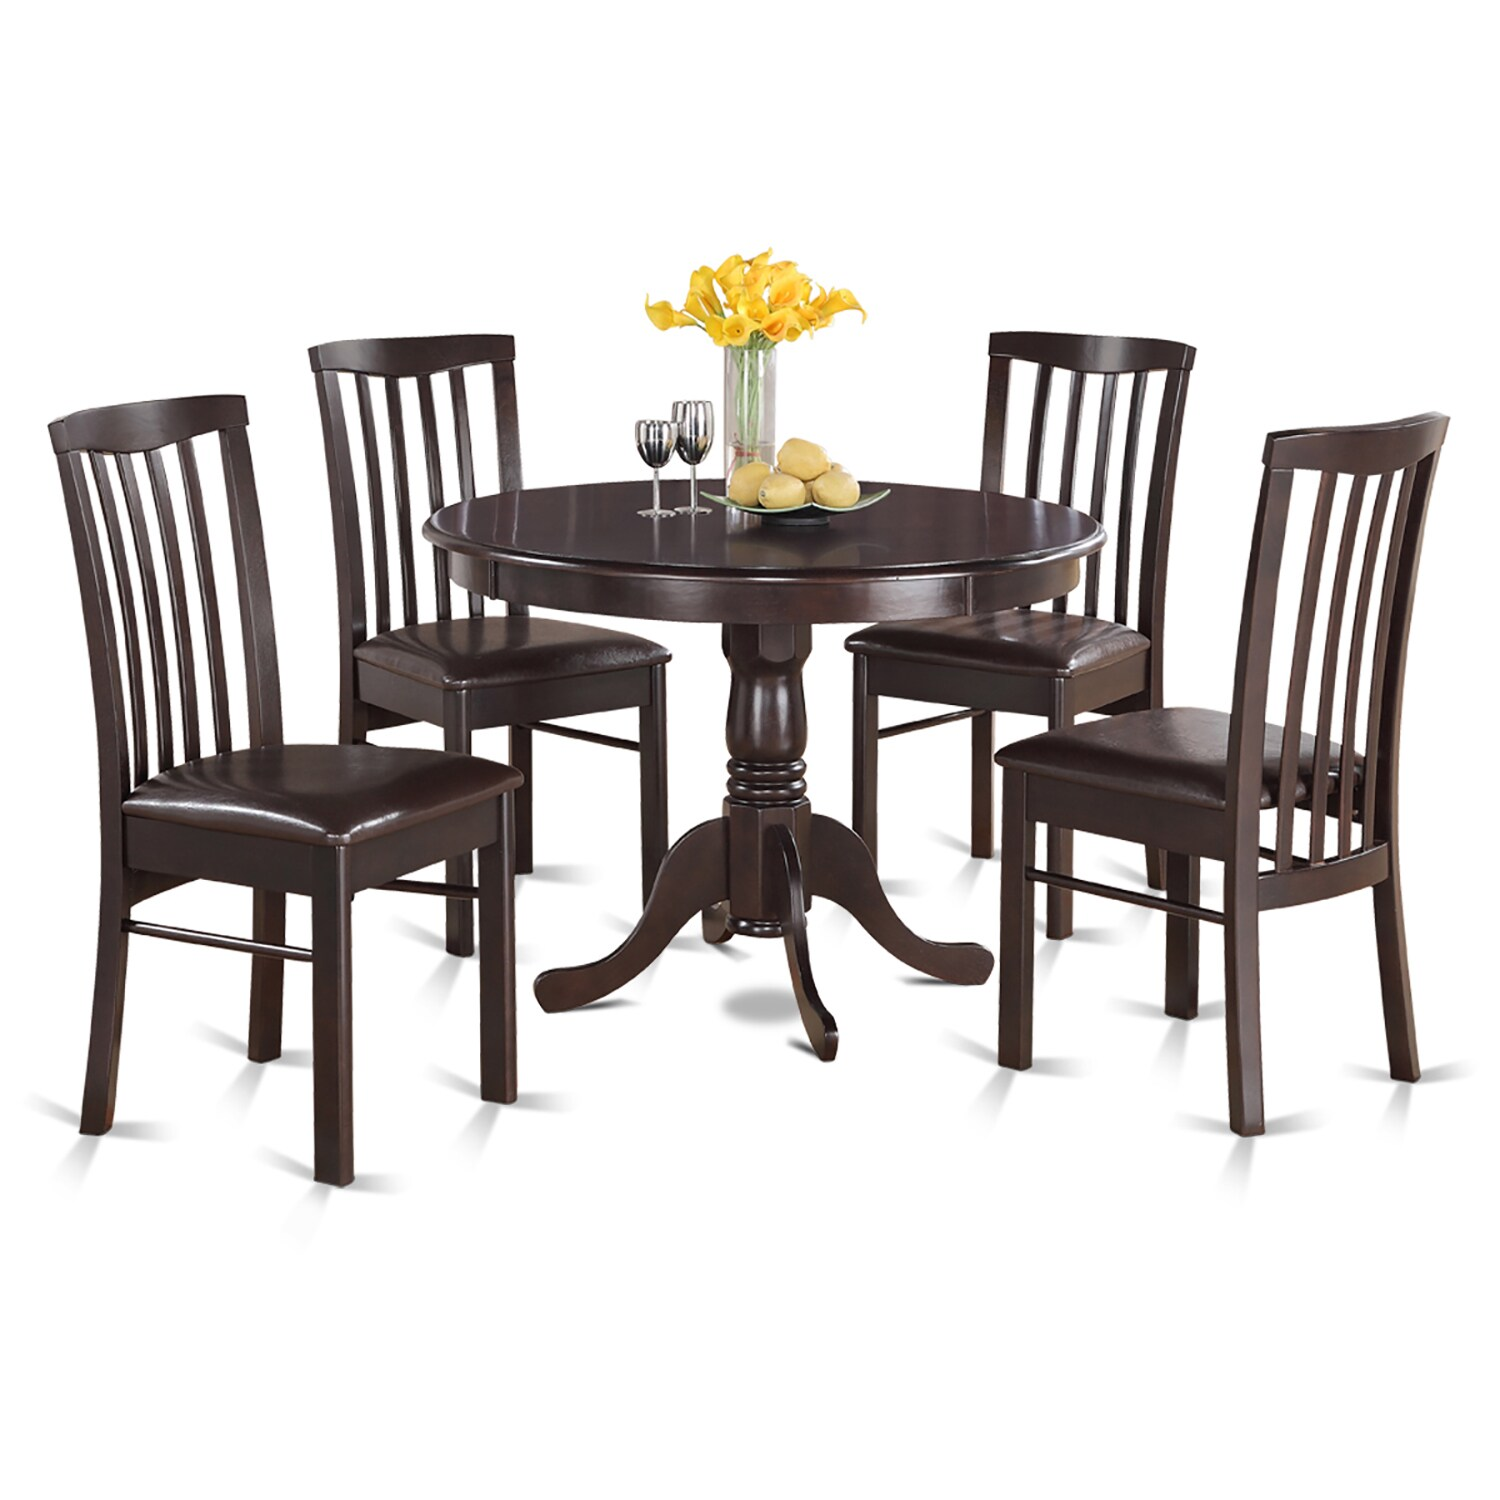 5-piece Dining Table Round Table and 4 Dining Chairs (Fau...